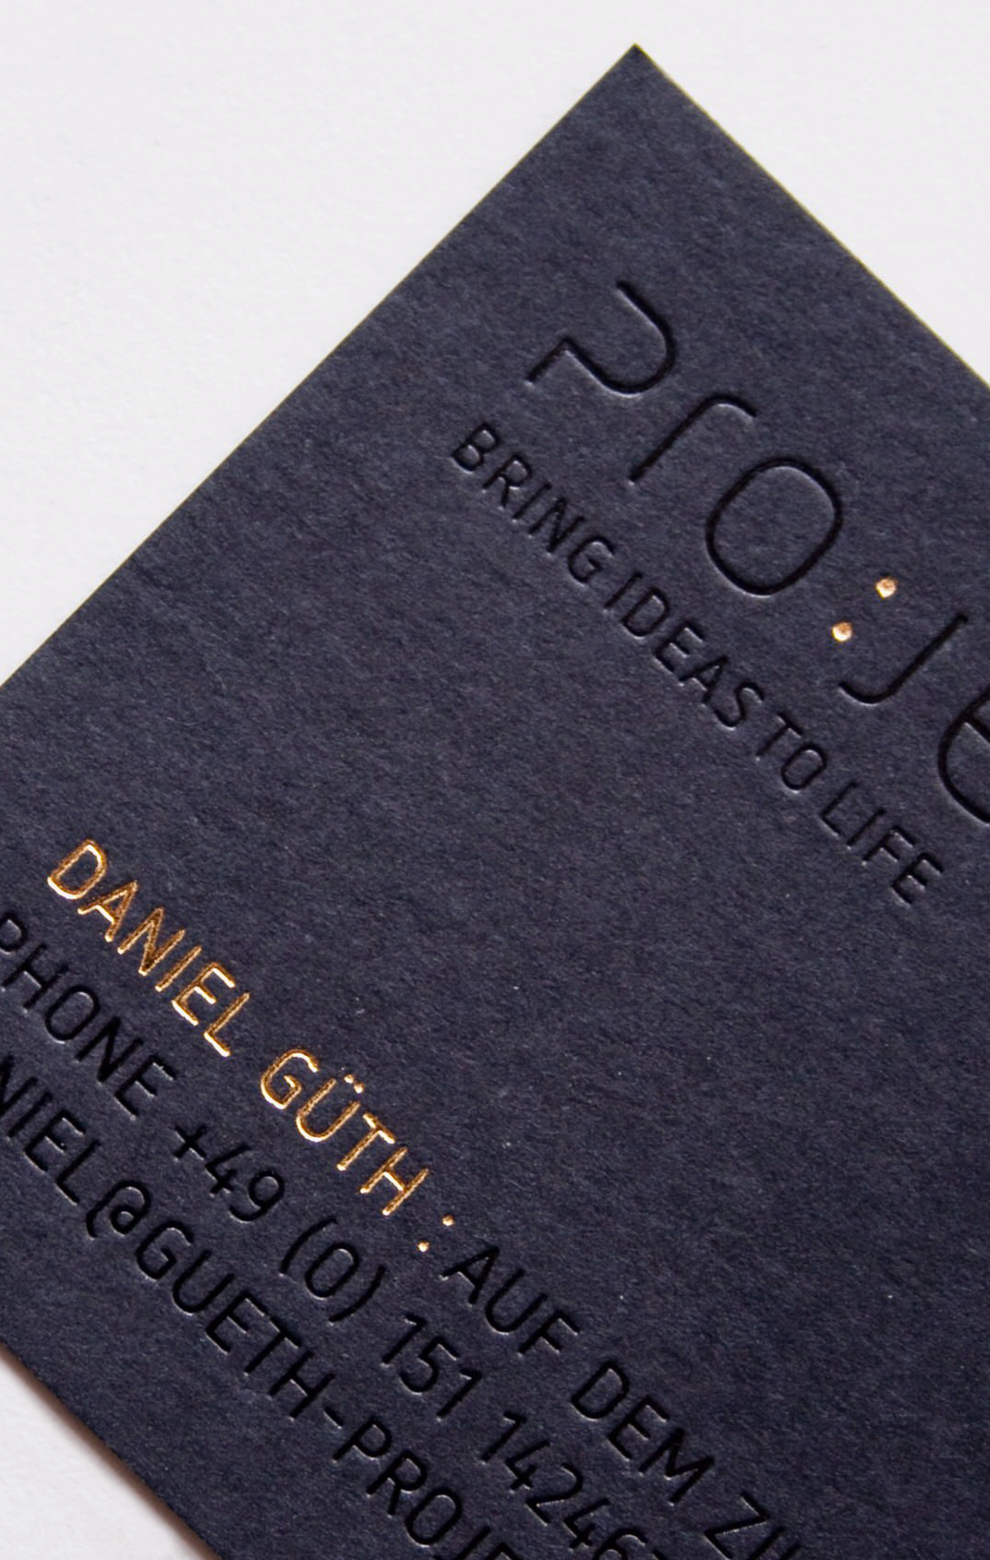 Corporate Design, Visitenkarte für Project, entworfen von den sons of ipanema, einer Grafik Design Agentur aus Köln. Dateil von der Goldveredelung und Blindprägung auf schwarzer Pappe.